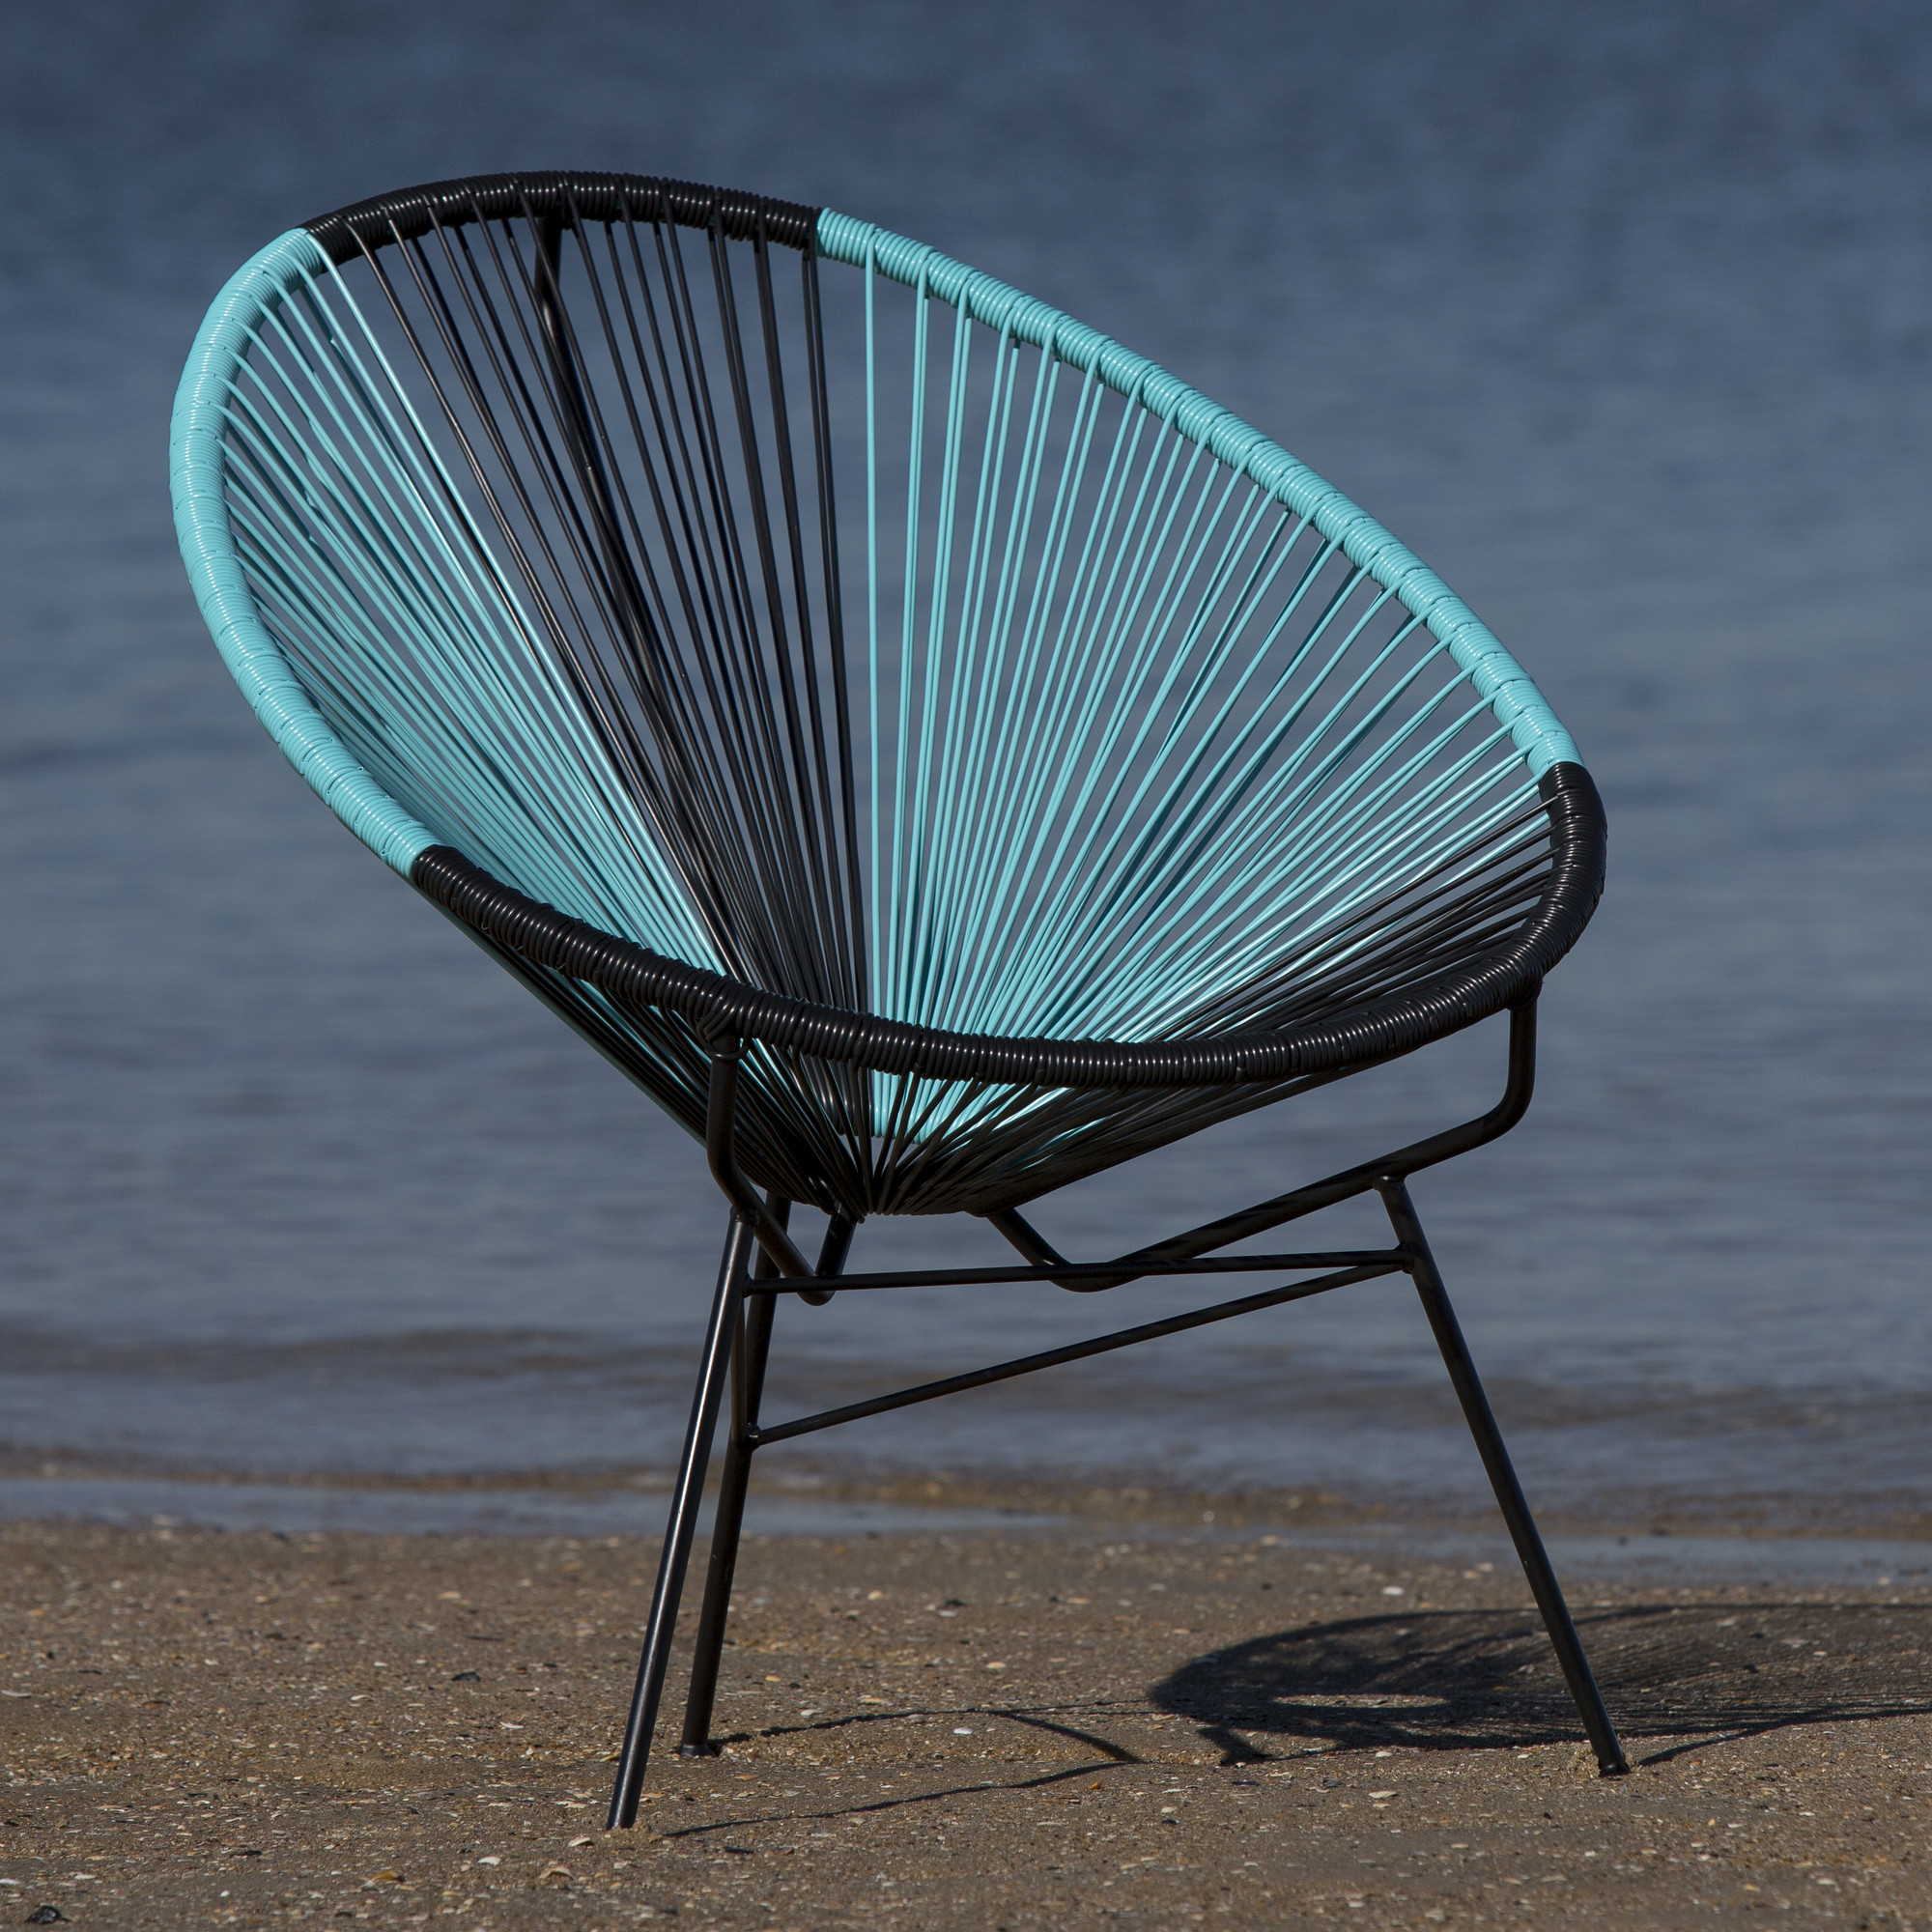 new replica outdoor acapulco chair ebay. Black Bedroom Furniture Sets. Home Design Ideas